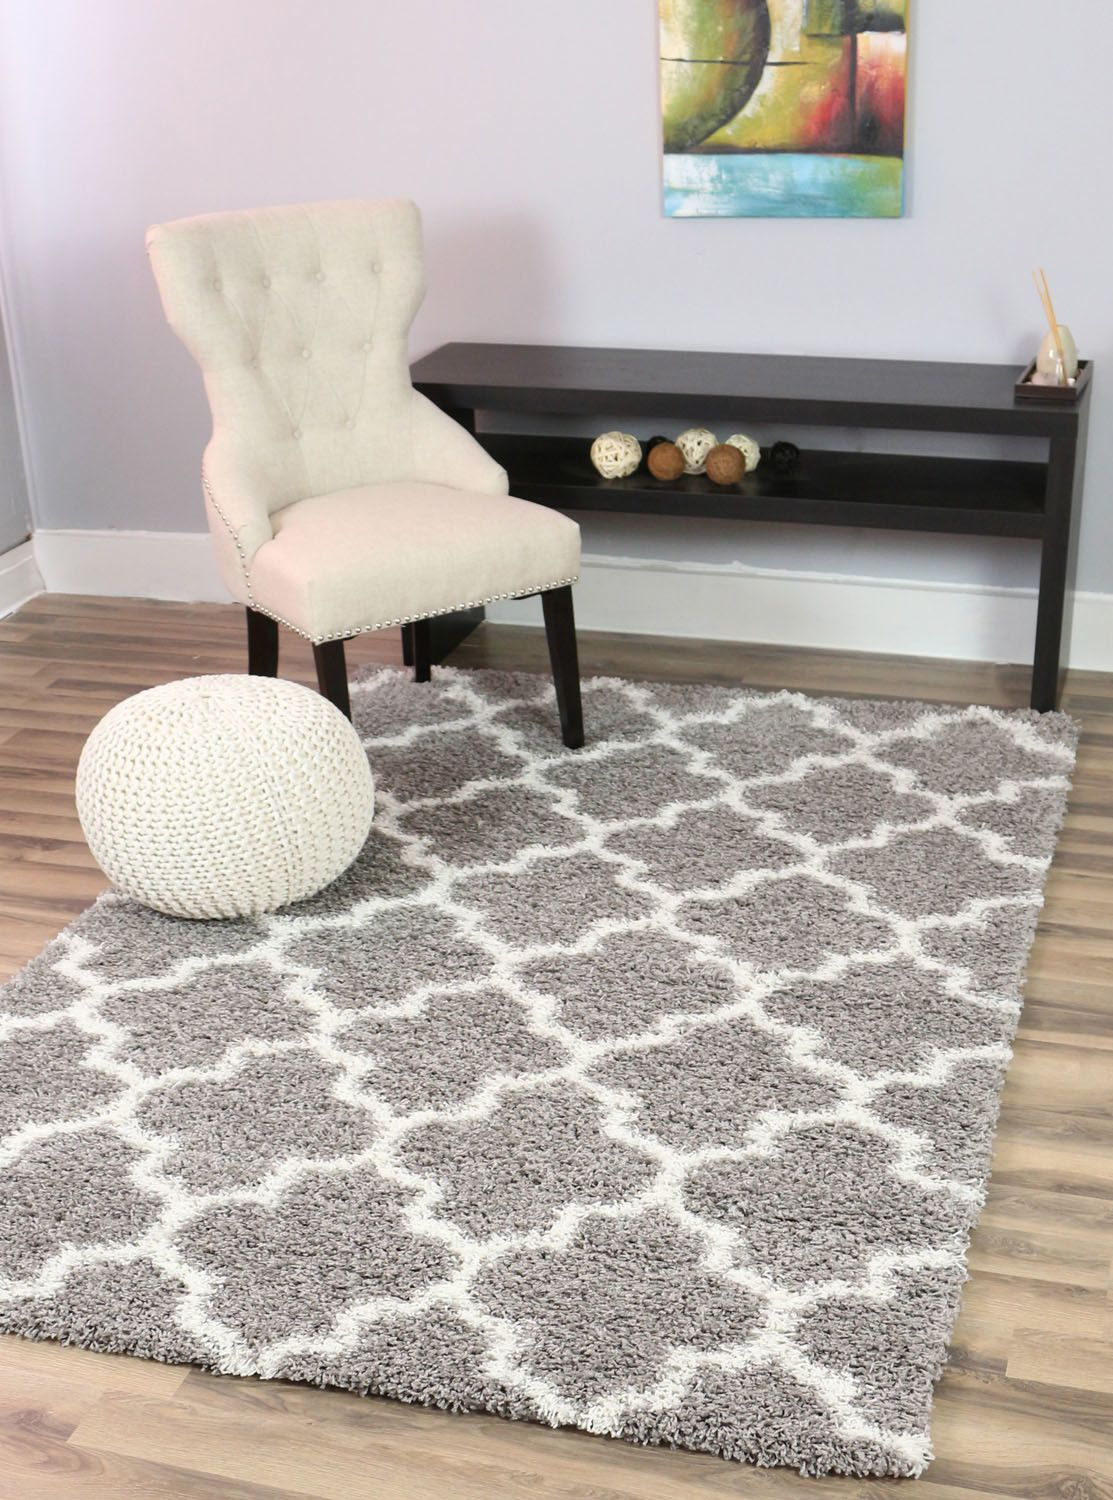 You Ll Love The Gray White Area Rug At Allmodern With Great Deals On Modern Decor Products And White Rug Living Room Grey And White Rug Shag Rug Living Room